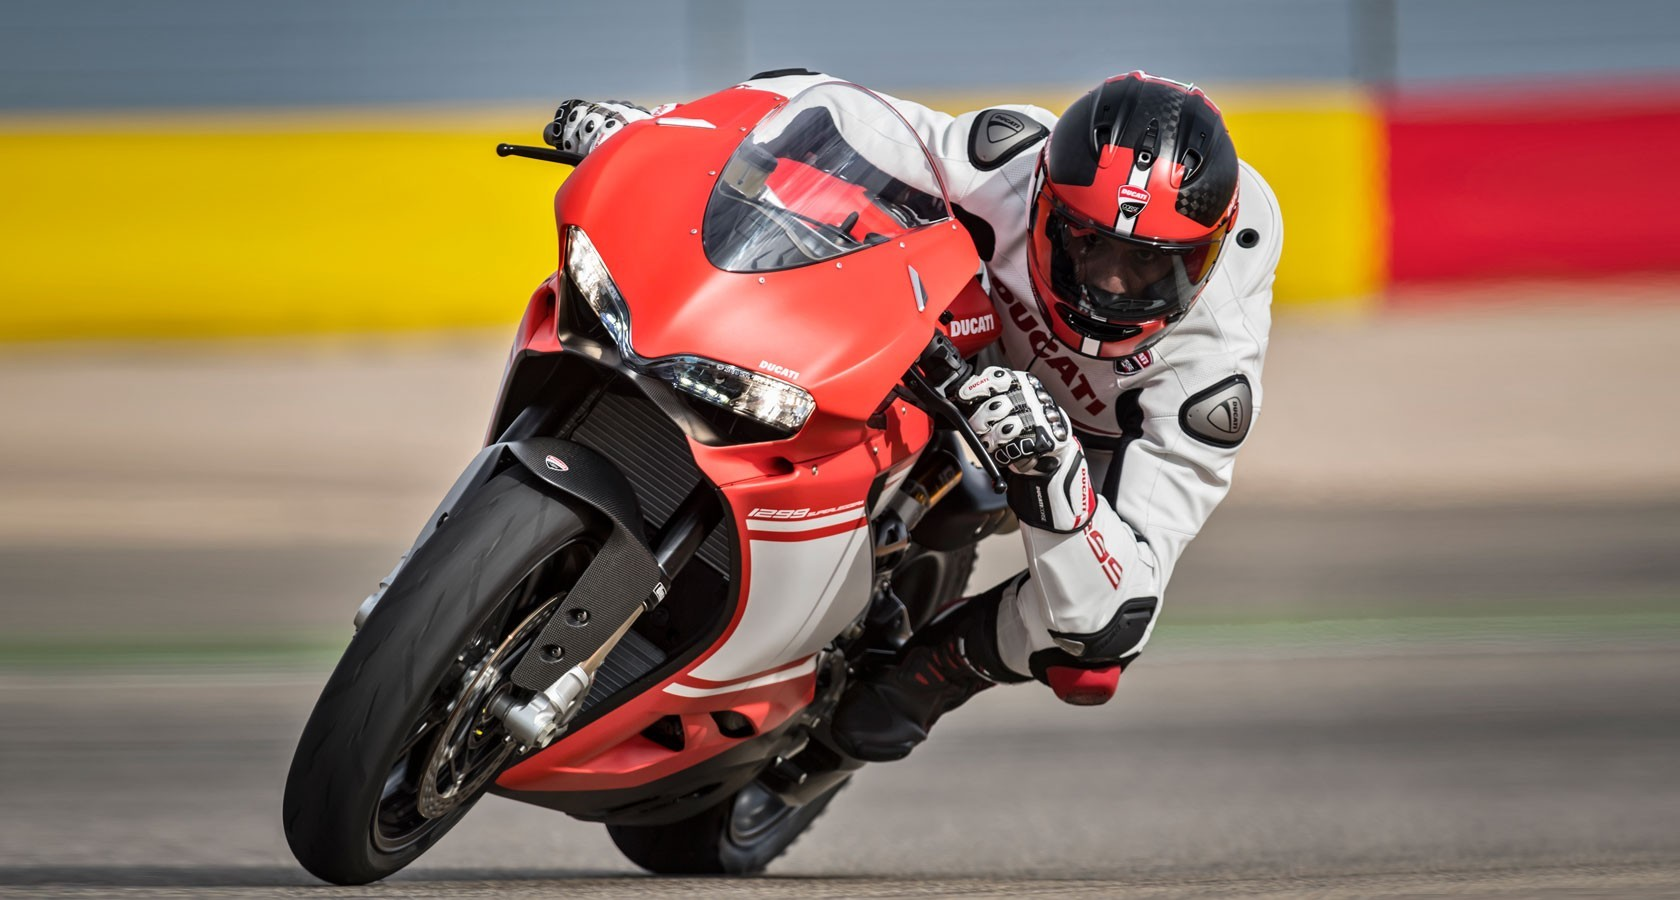 ducati 1299 superleggera price, specs, review, pics & mileage in india